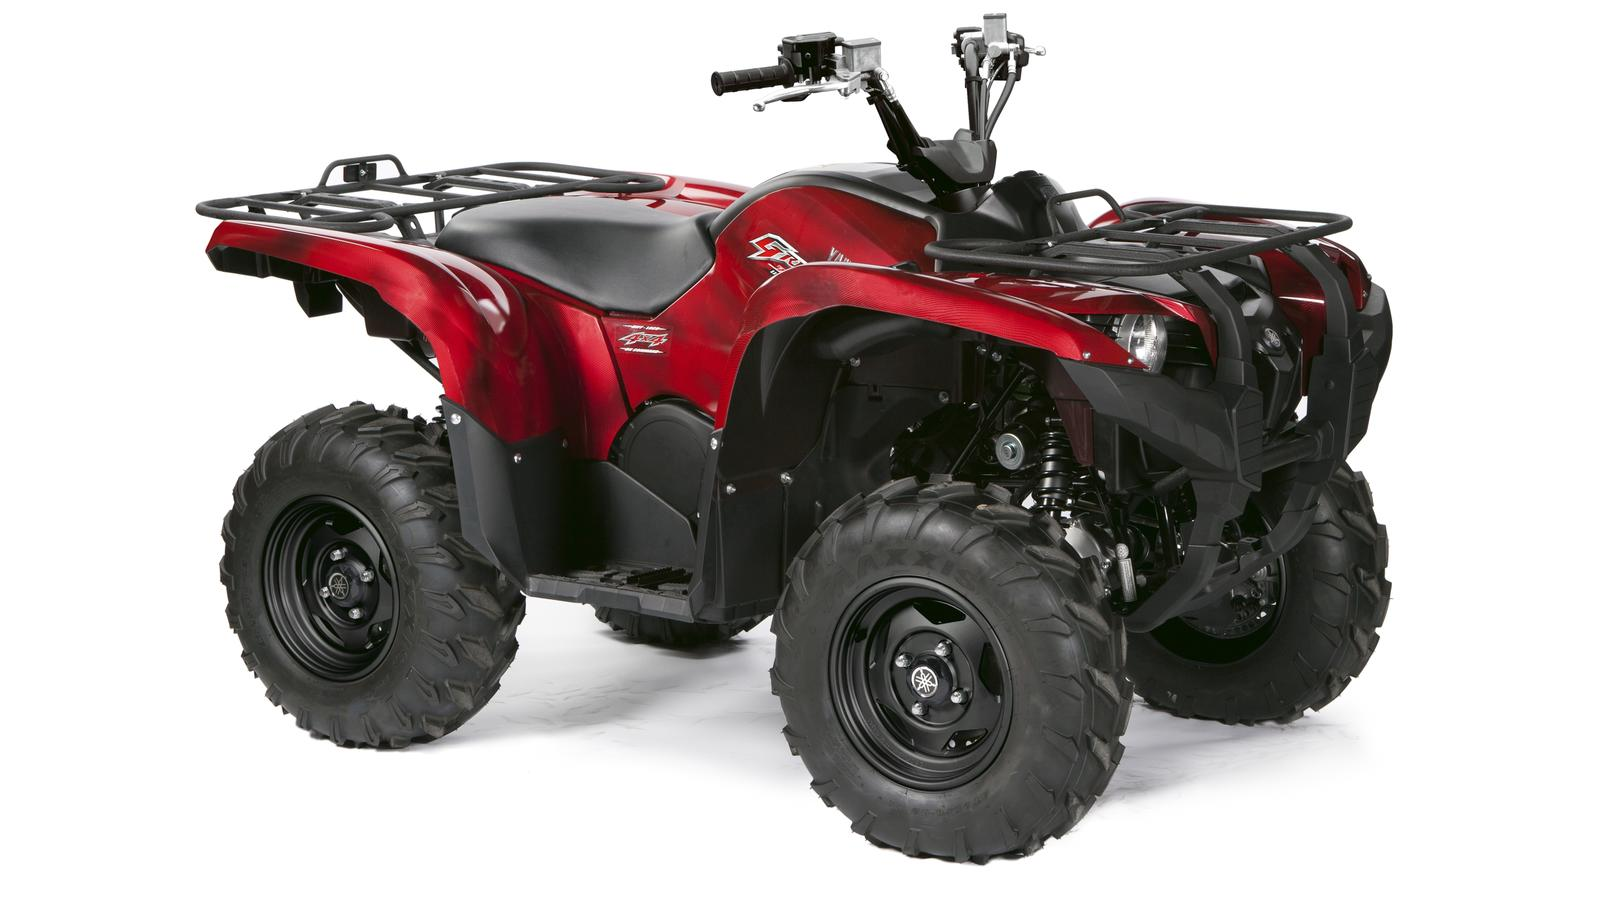 2013 yamaha grizzly 700 eps se review top speed. Black Bedroom Furniture Sets. Home Design Ideas